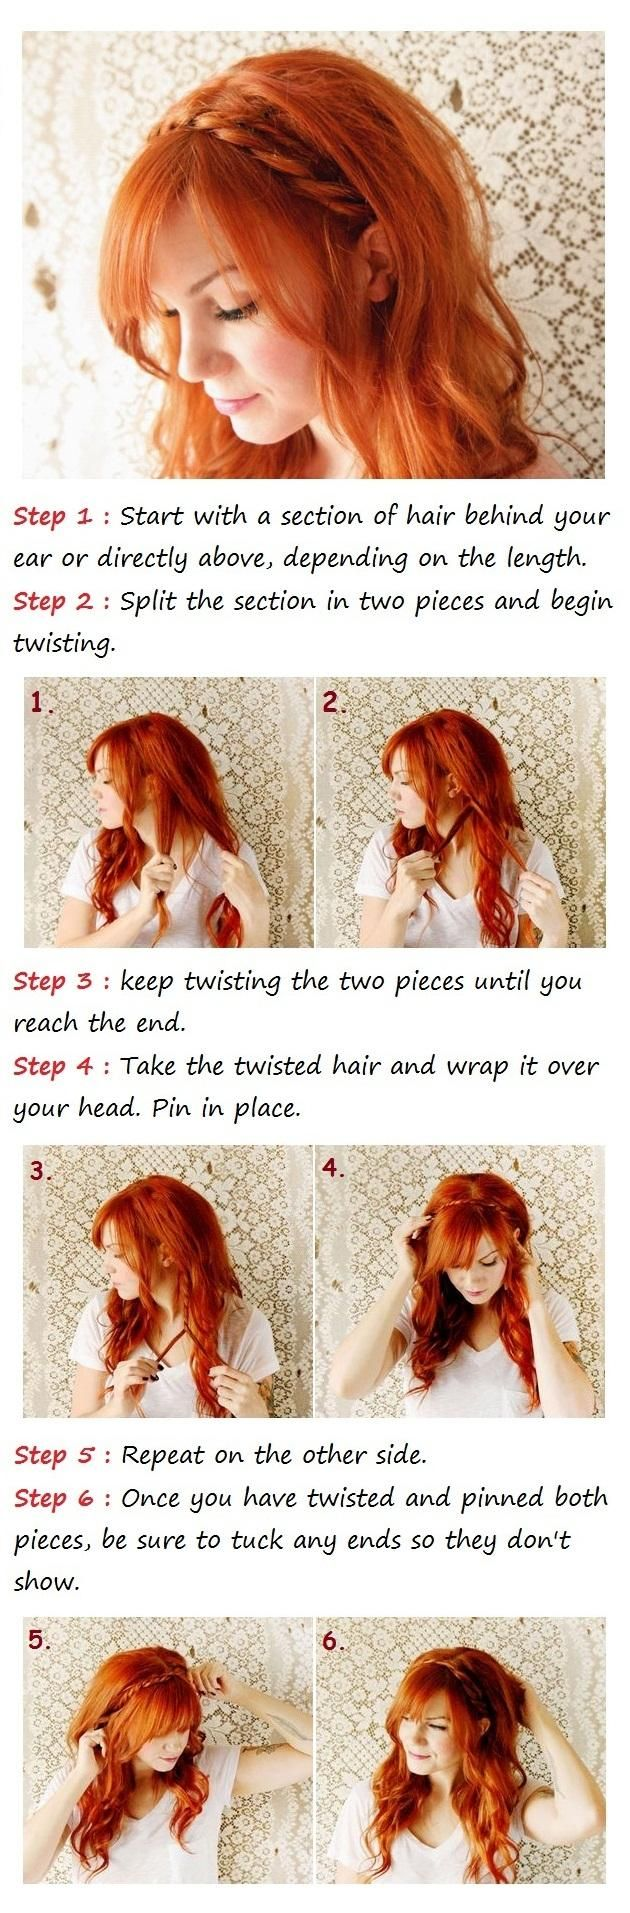 Cute Braids Tutorial! best with any kind of hair! if you tend to have thinner hair when you do this hair style use it with soft curls to add volume to your hair! if you have average hair you can really do anything with this hair do! if you have thick hair you can either straighten your hair or do soft curls as well